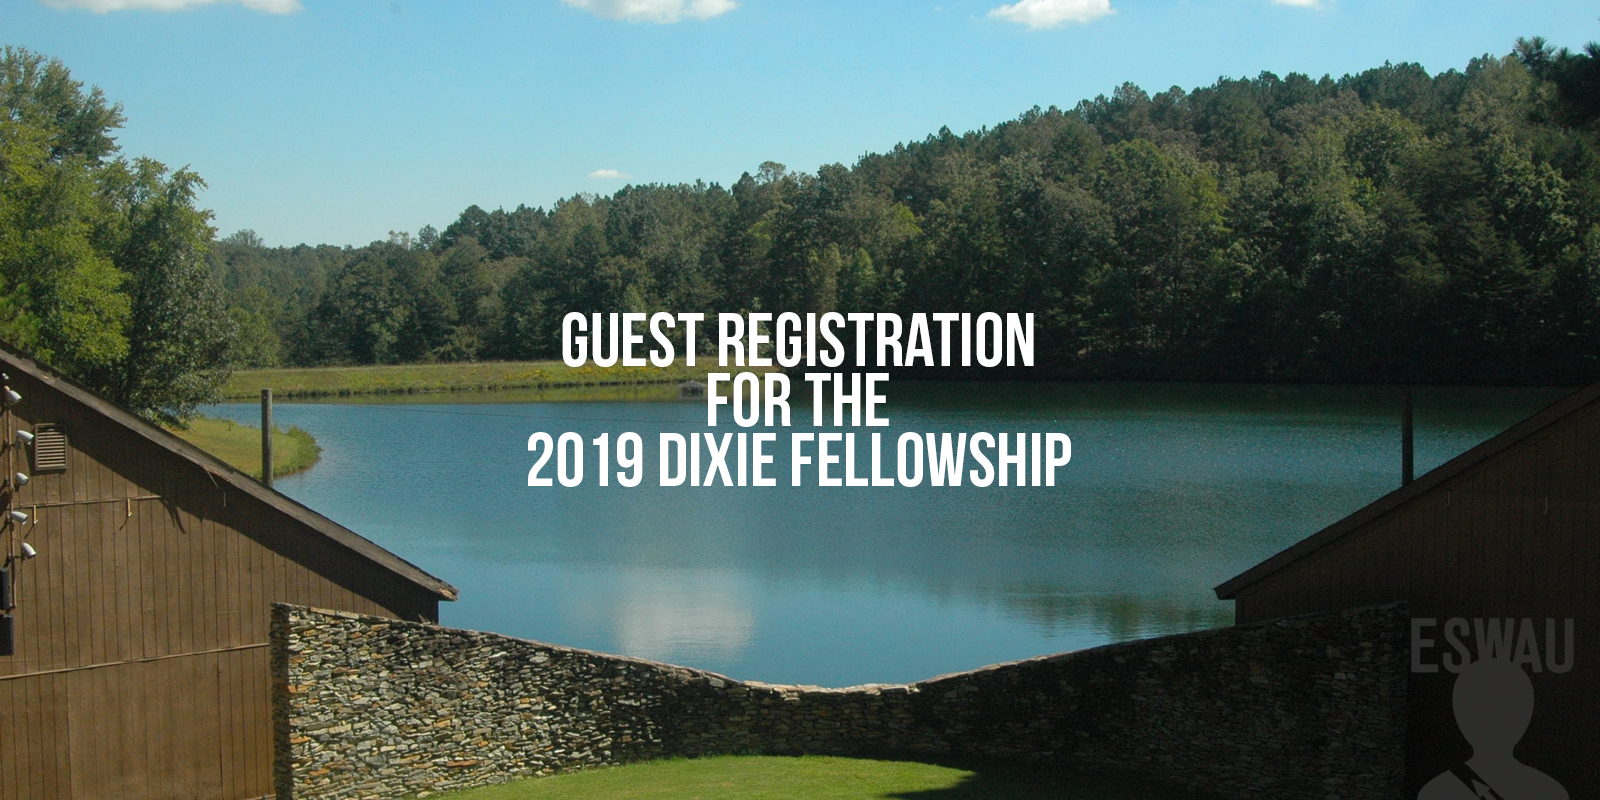 Guest Registration for the 2019 Dixie Fellowship